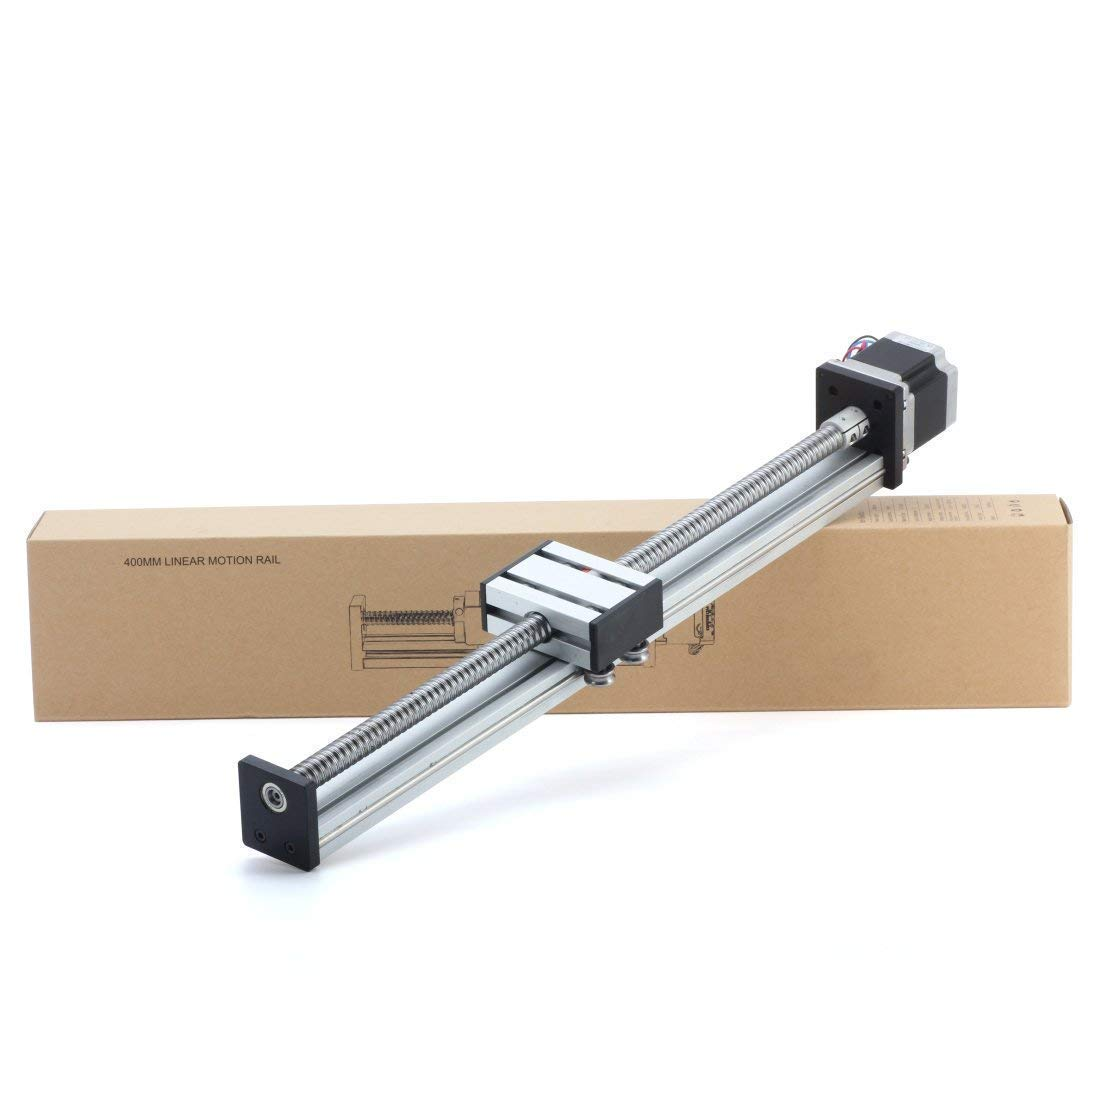 MYSWEETY 400mm Travel Length Linear Stage Actuator DIY CNC Router Parts X Y Z Linear Rail Guide Sfu1605 Nema23